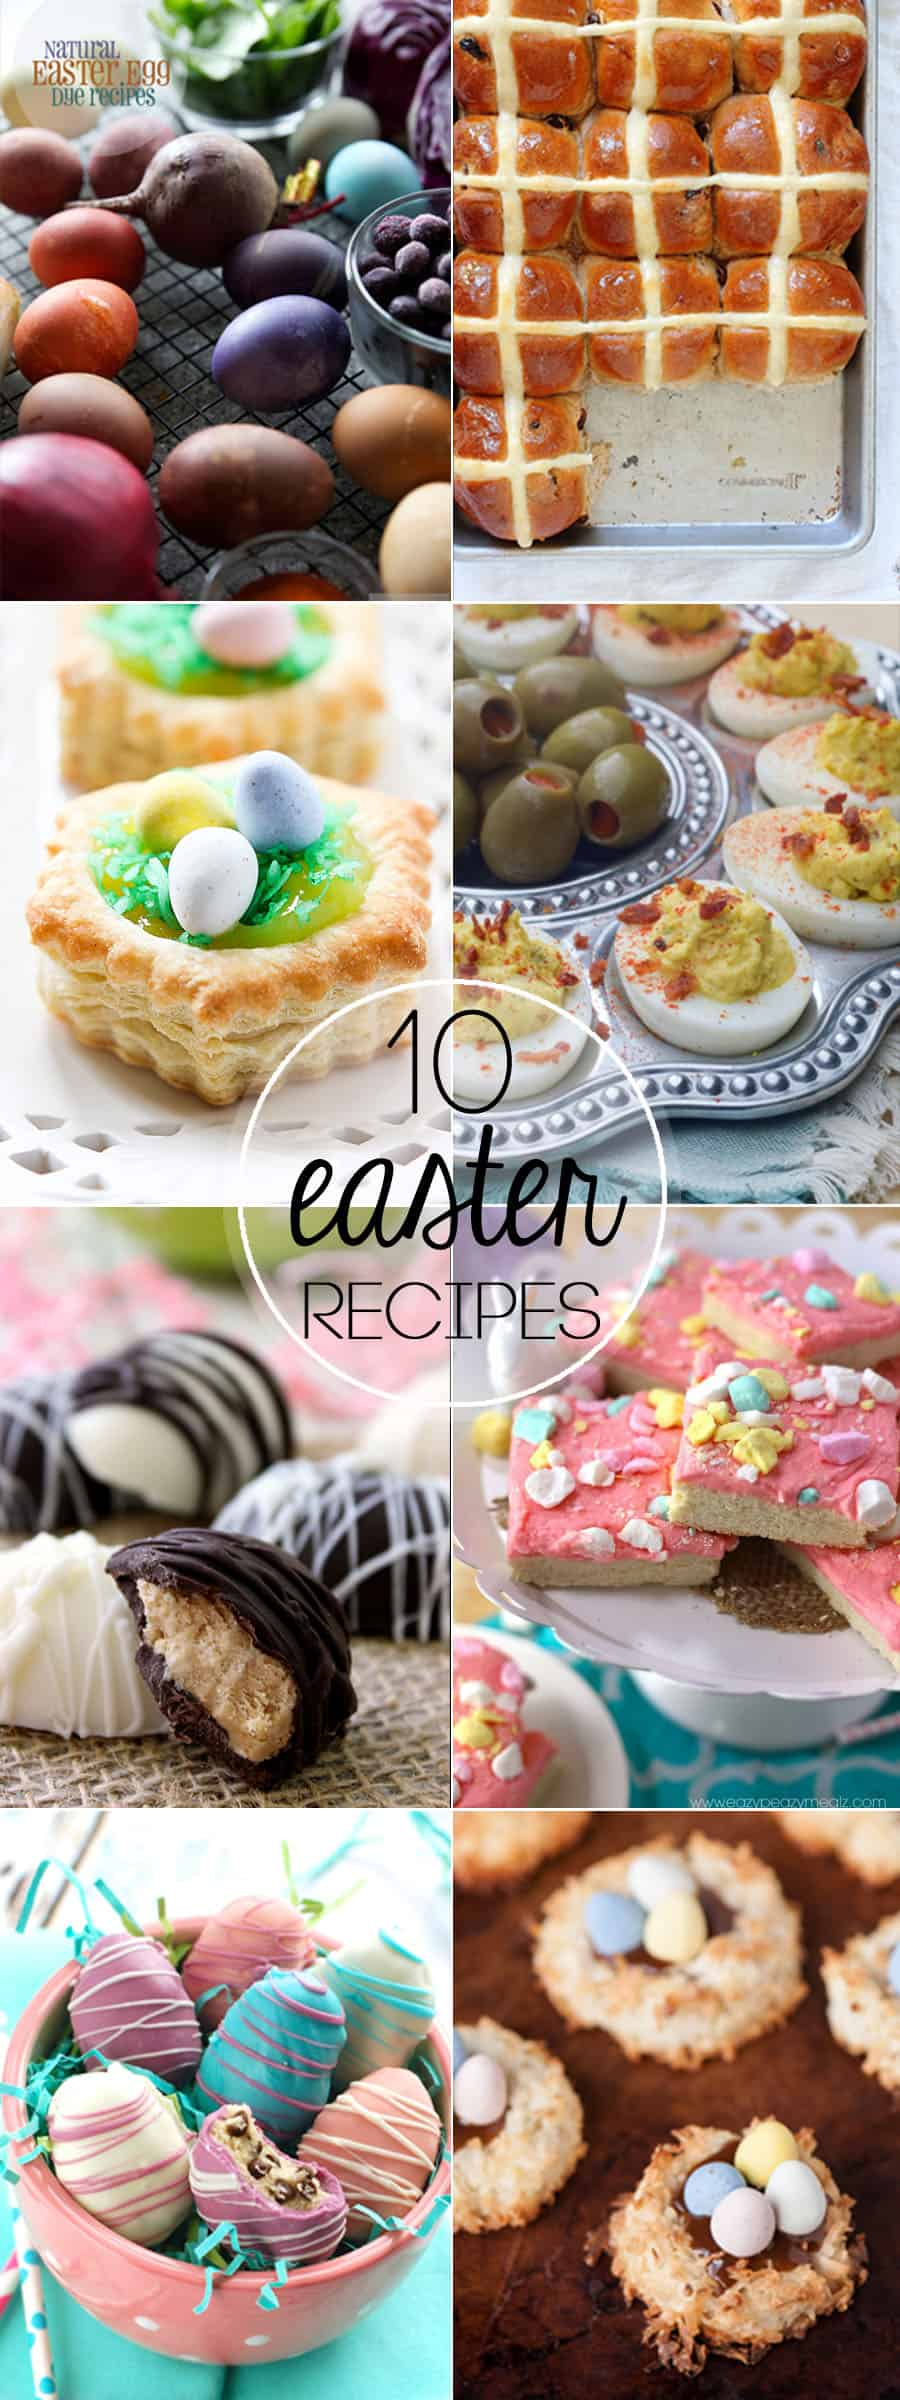 10-easter-recipes-pinterest